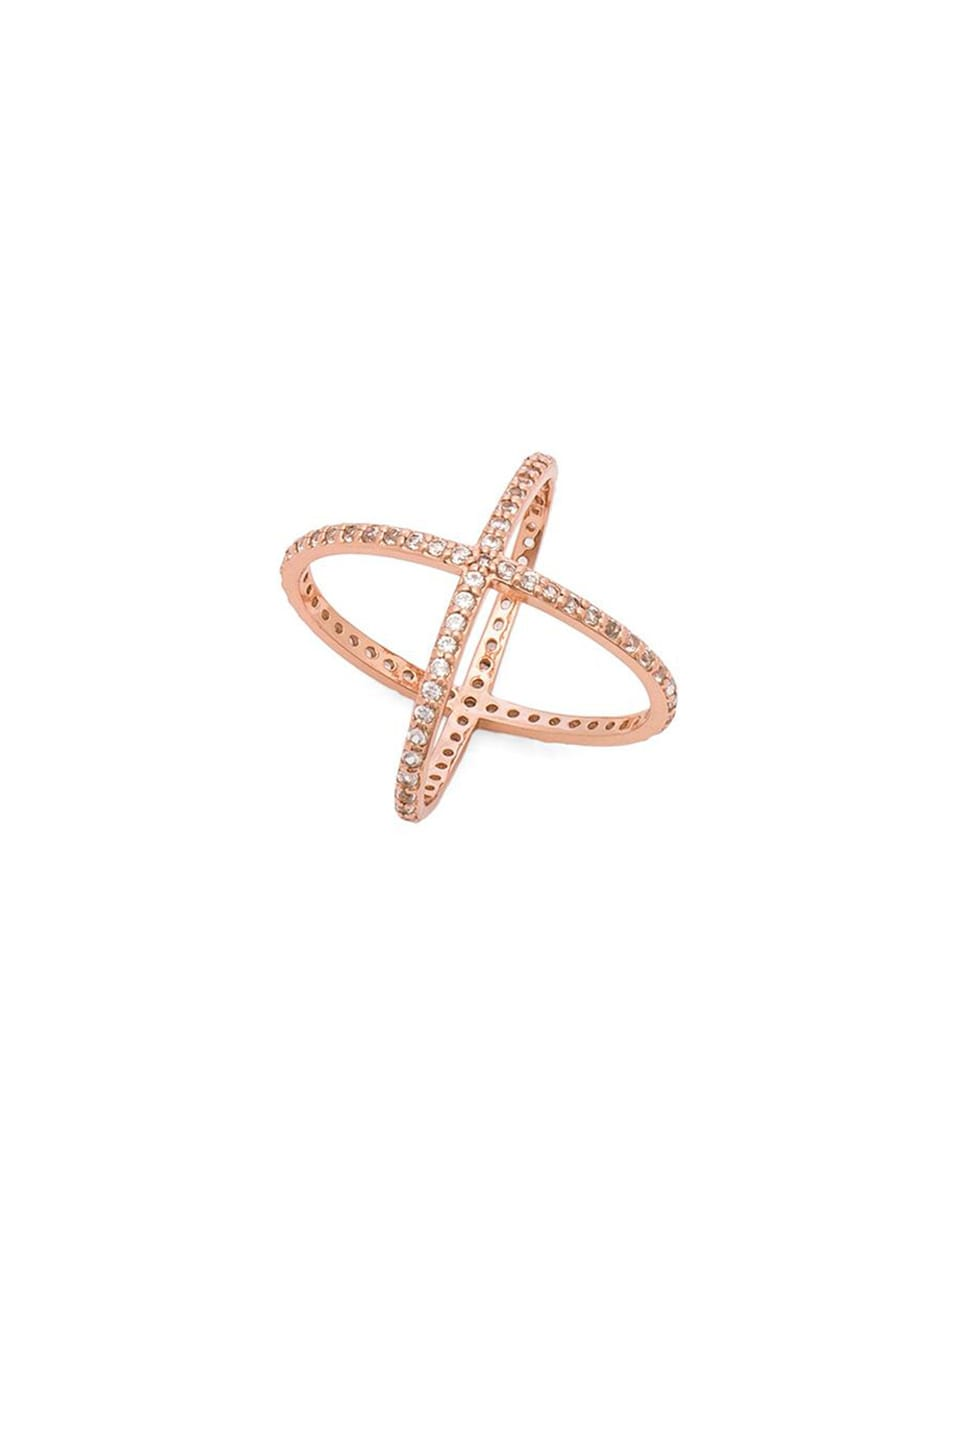 Alex Mika Criss Cross Ring in Rose Gold